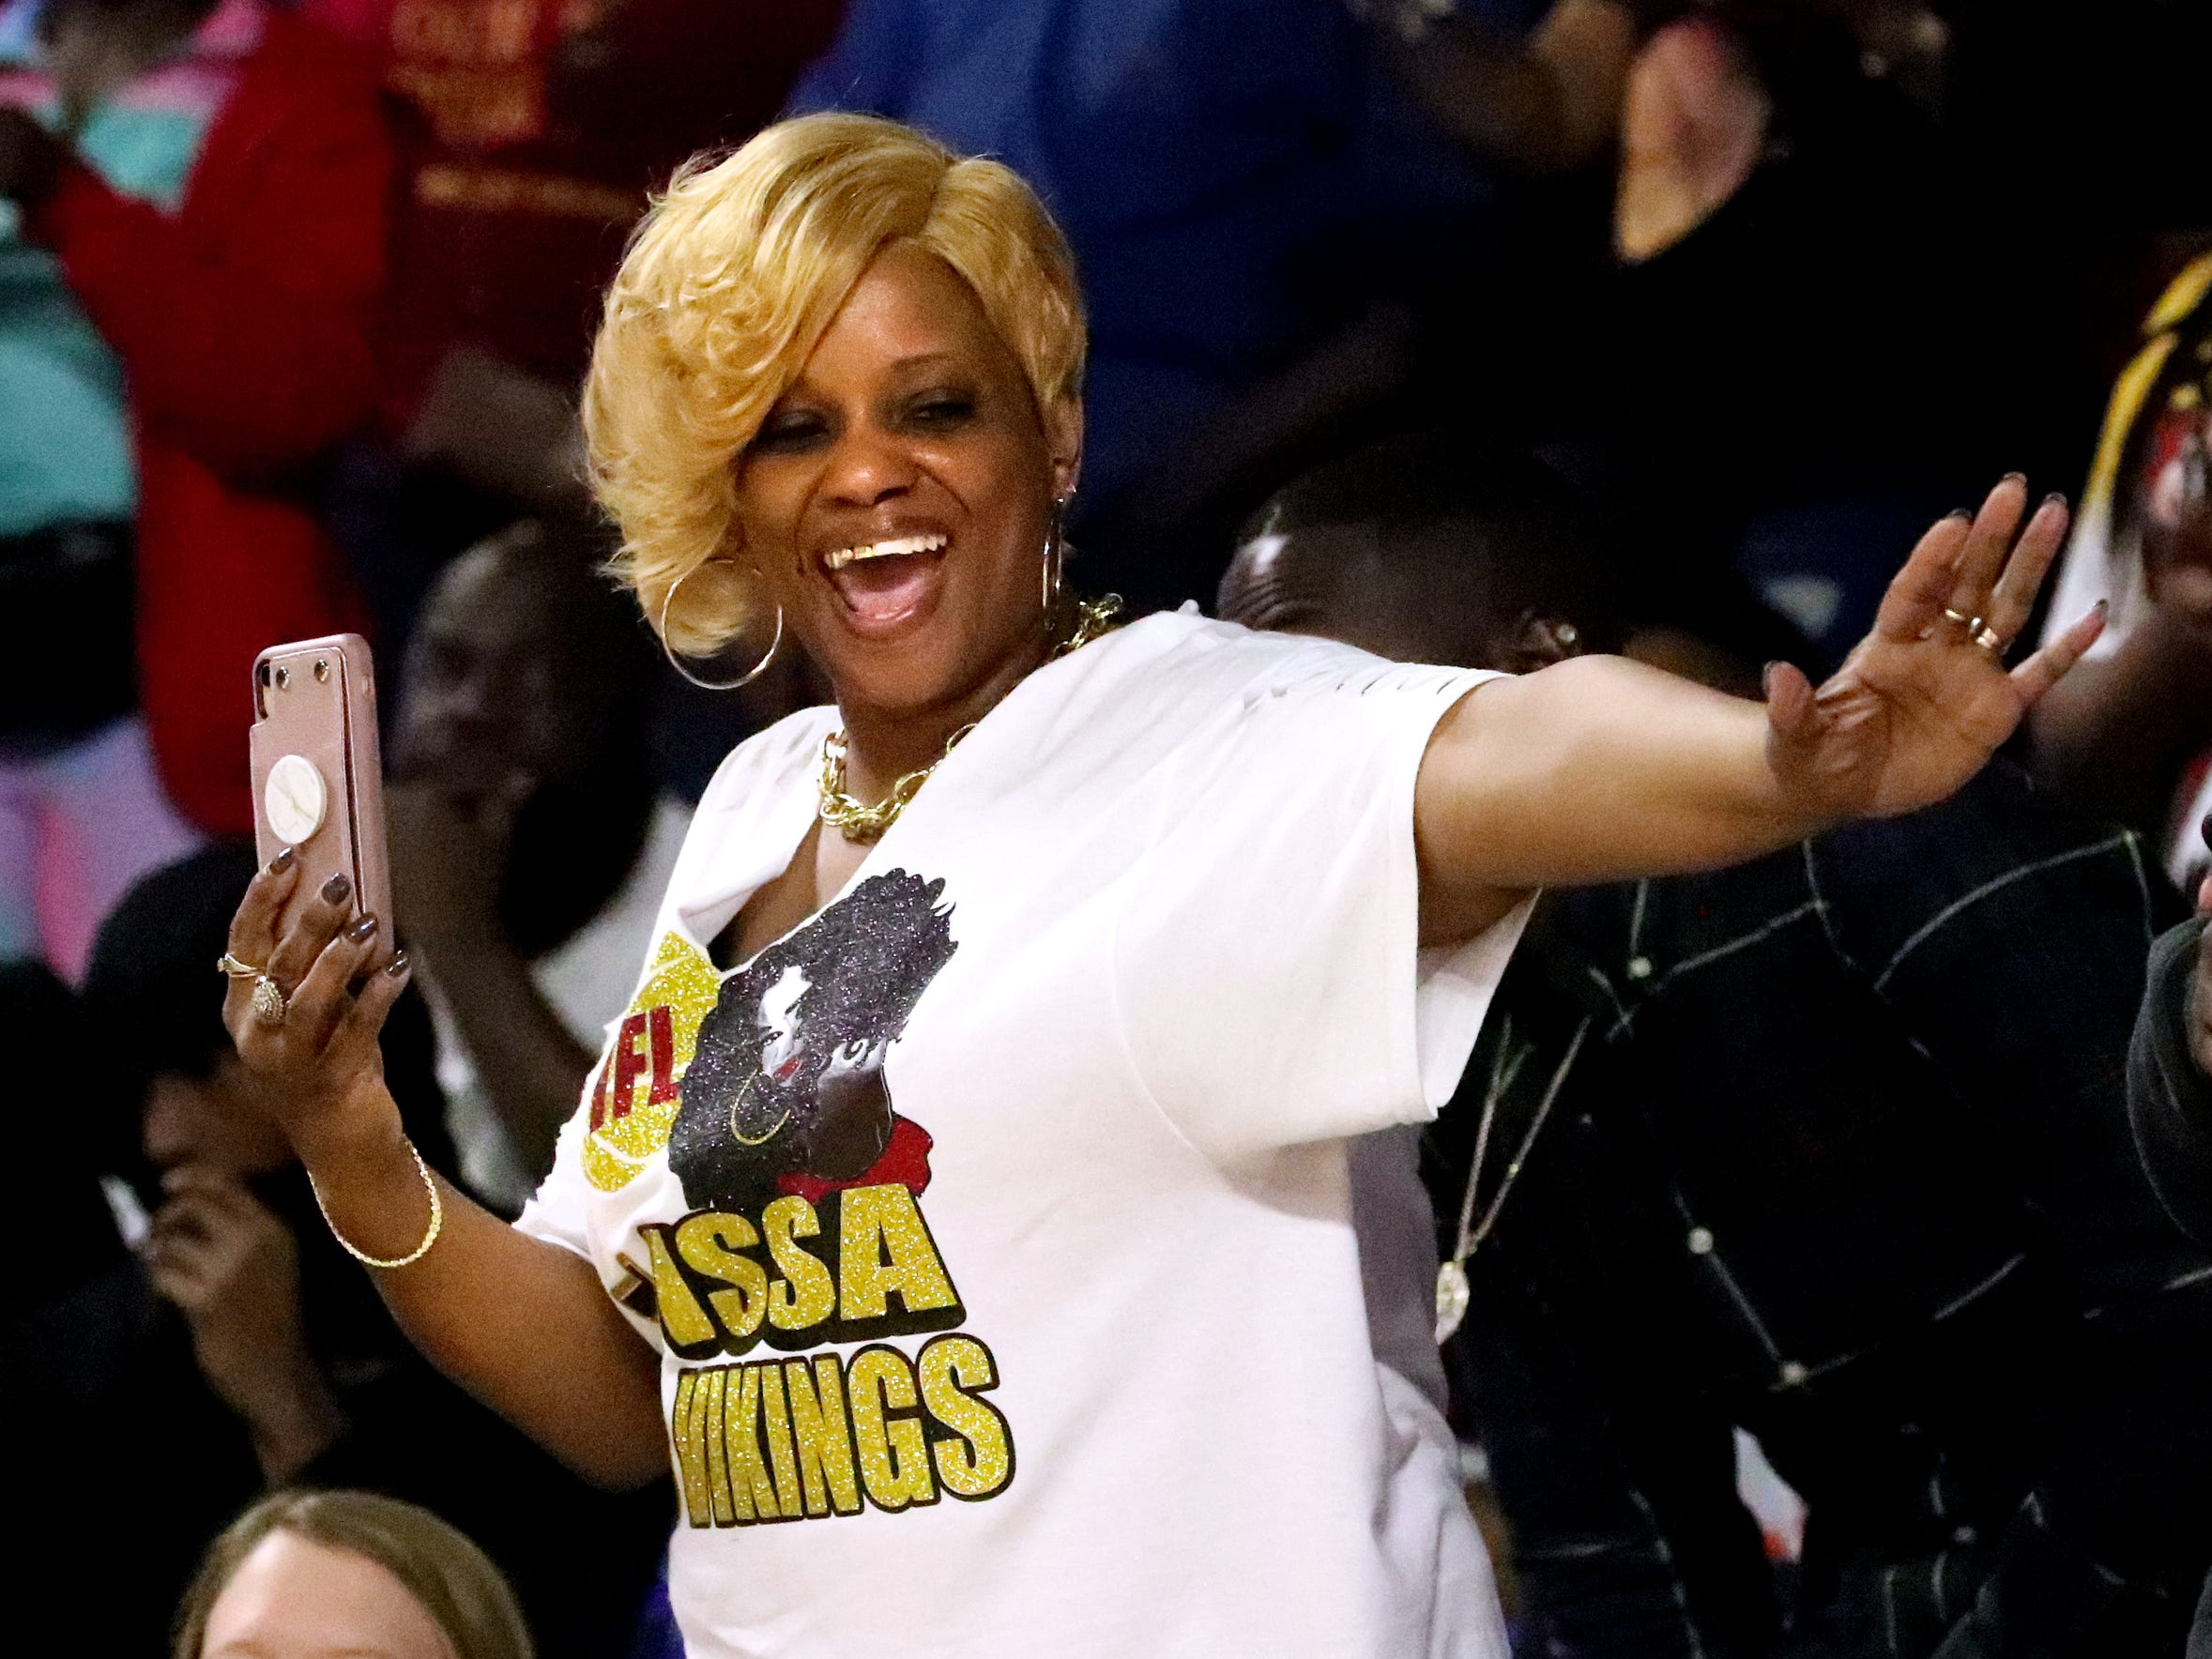 Humboldt fan Tracy Glenn celebrates in the crowd as Humboldt leads Fayetteville in the fourth quarter of the quarterfinal round of the TSSAA Class A Boys State Tournament, on Thursday, March 14, 2019, at Murphy Center in Murfreesboro, Tenn.